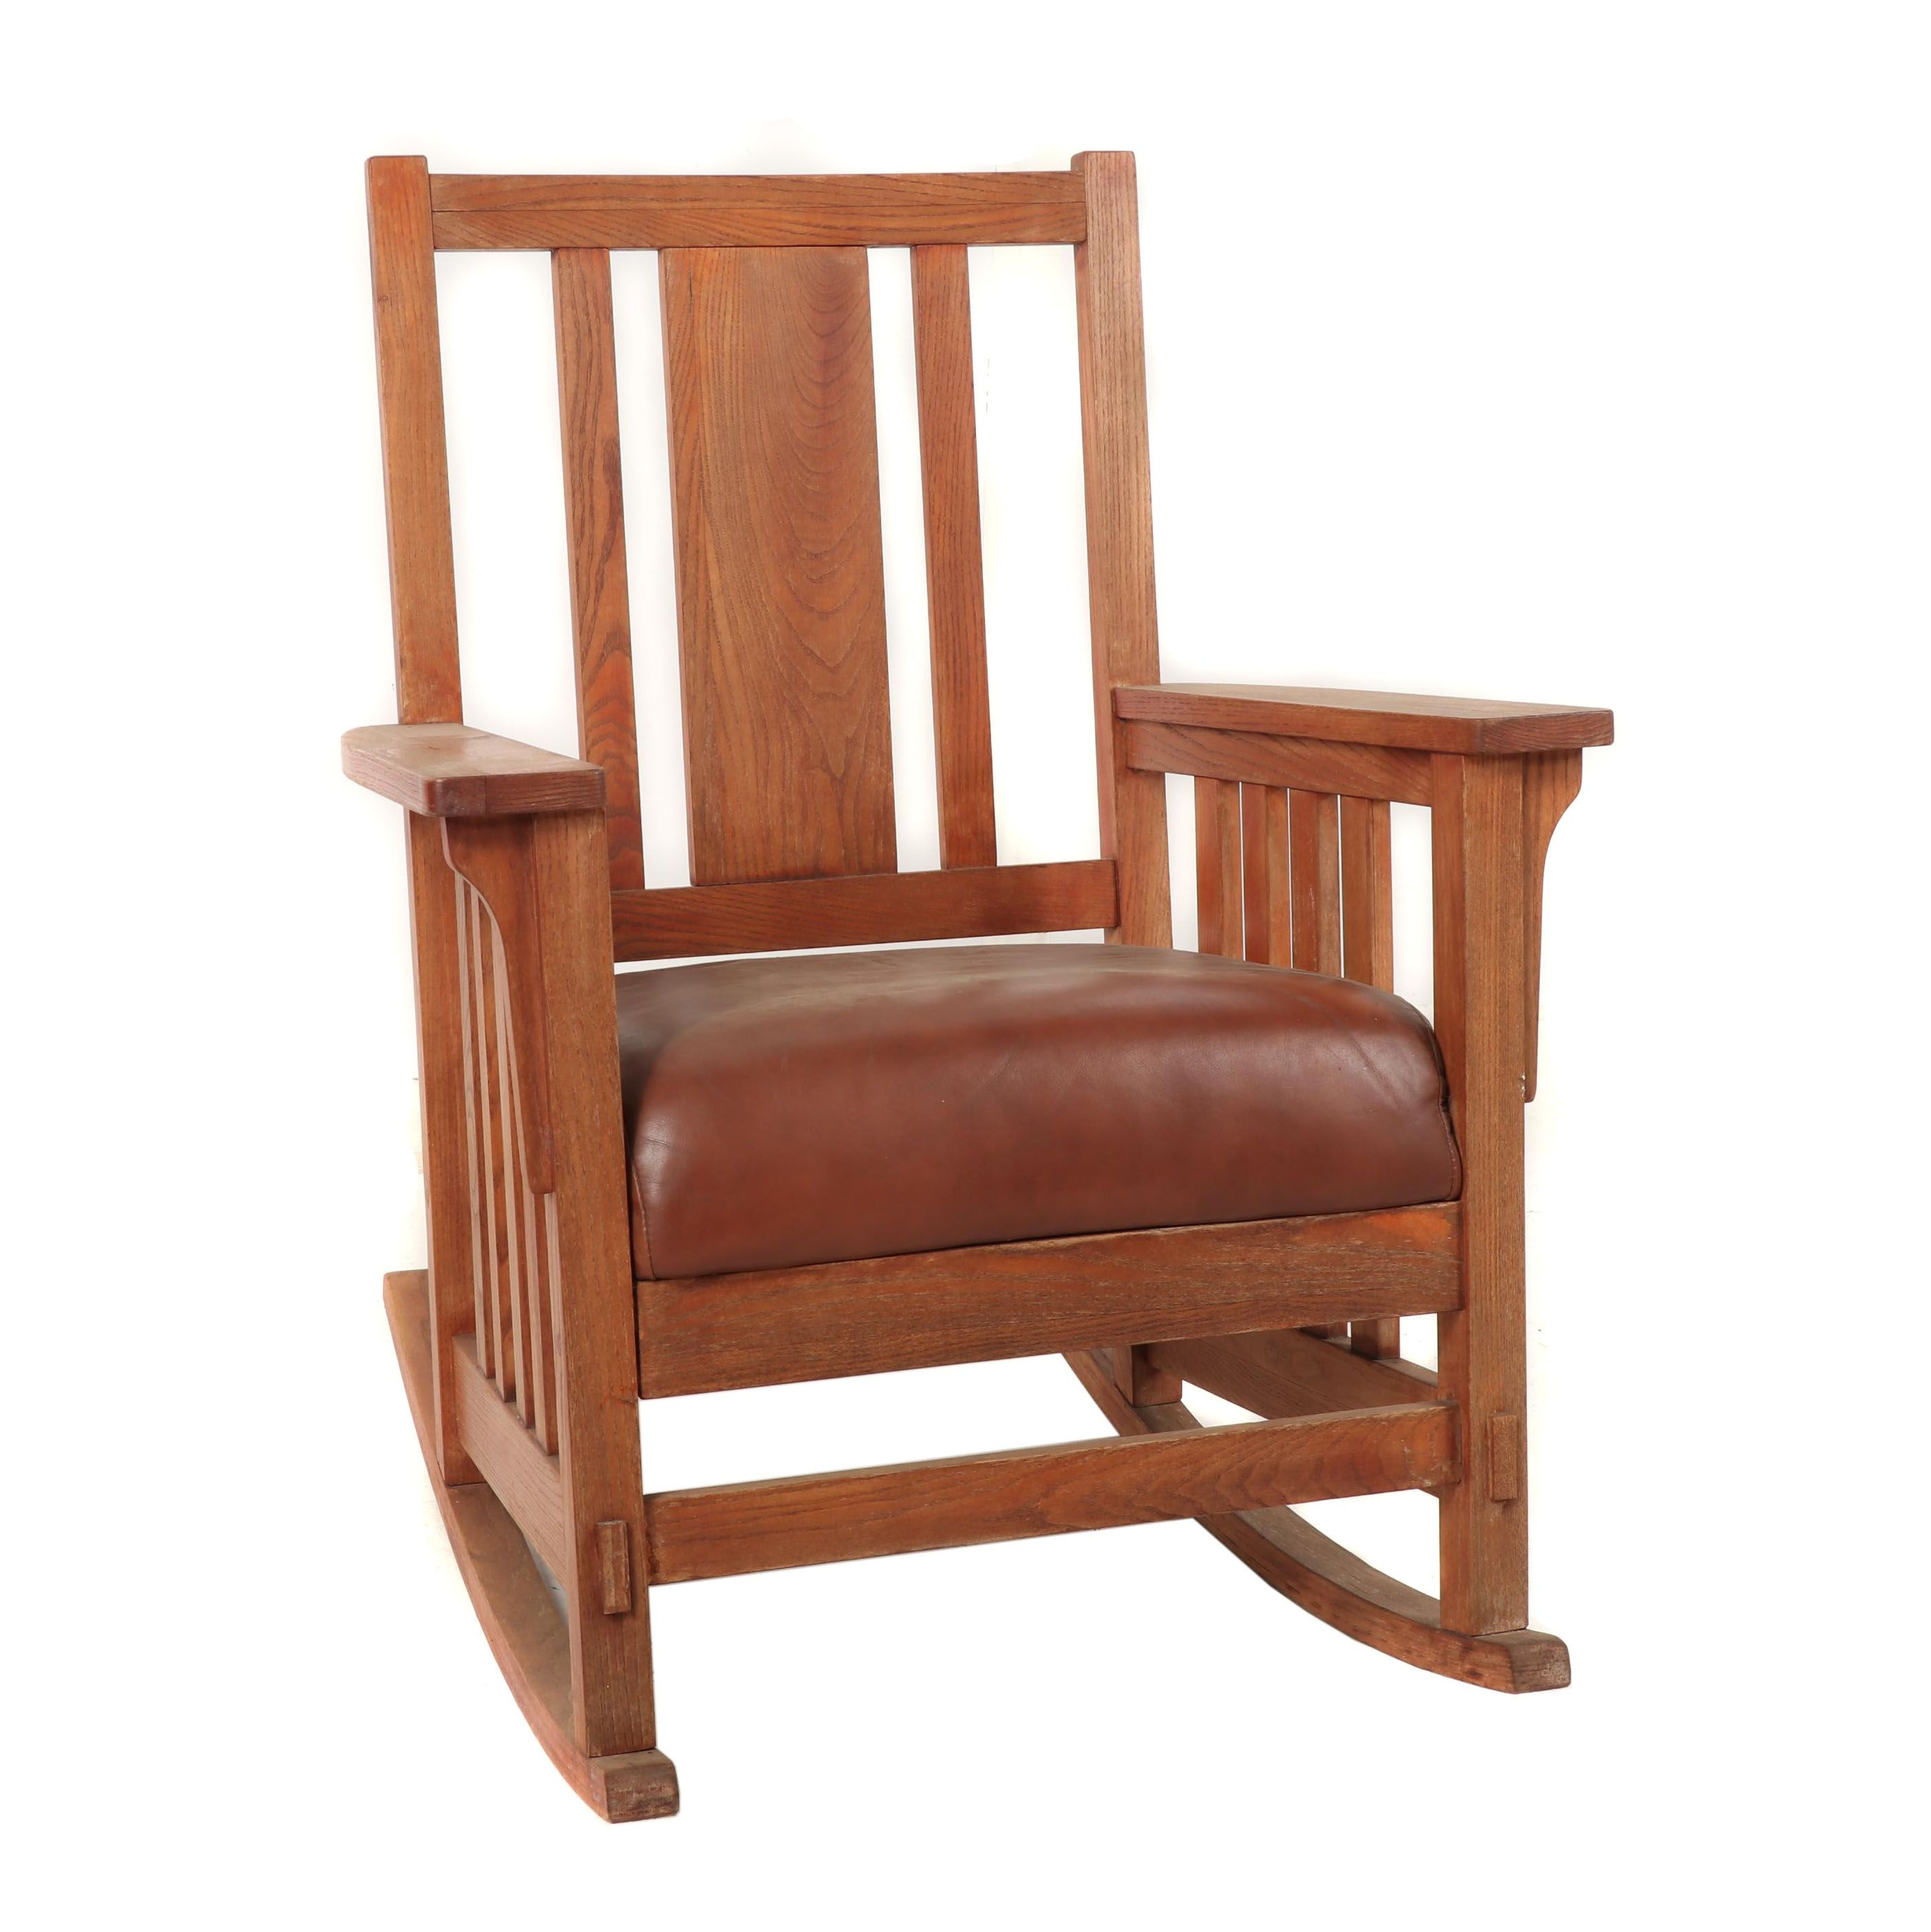 Arts and Crafts Style Oak Rocking Chair with Leather Seat, Late 20th Century